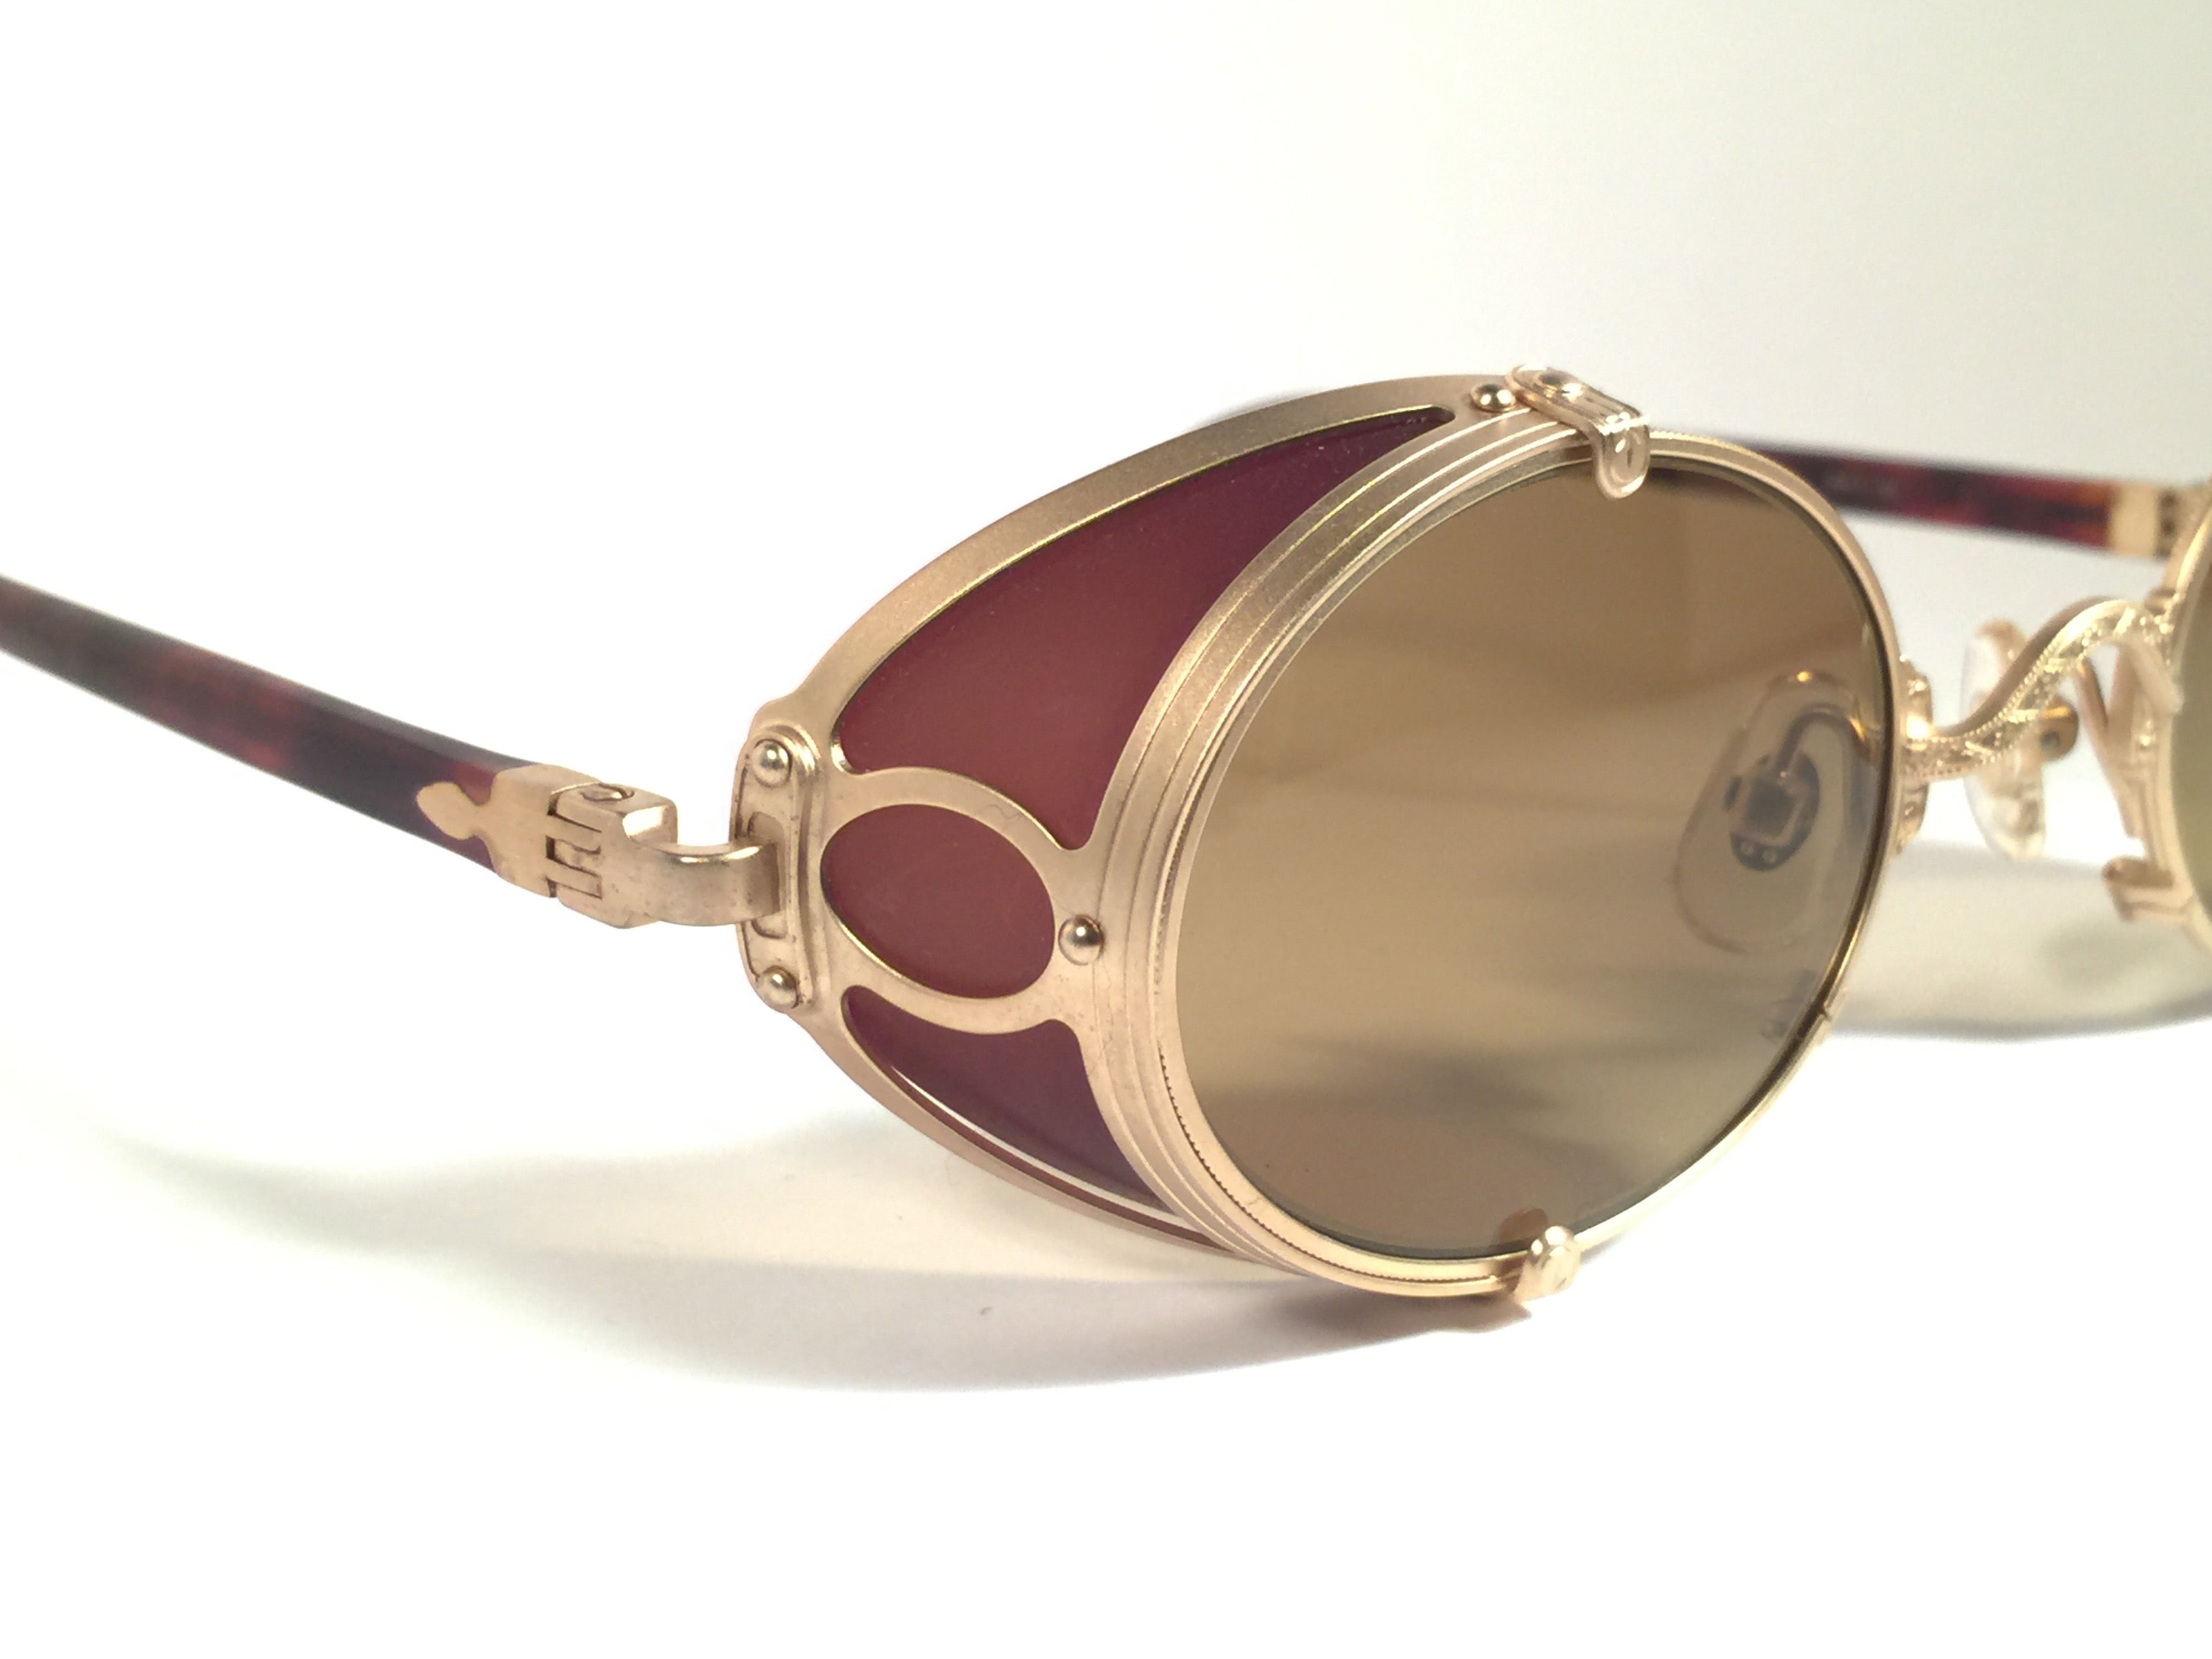 922cd318c28f1 New Vintage Matsuda 10610 Matte Gold Side Cups 1990 s Made in Japan  Sunglasses at 1stdibs